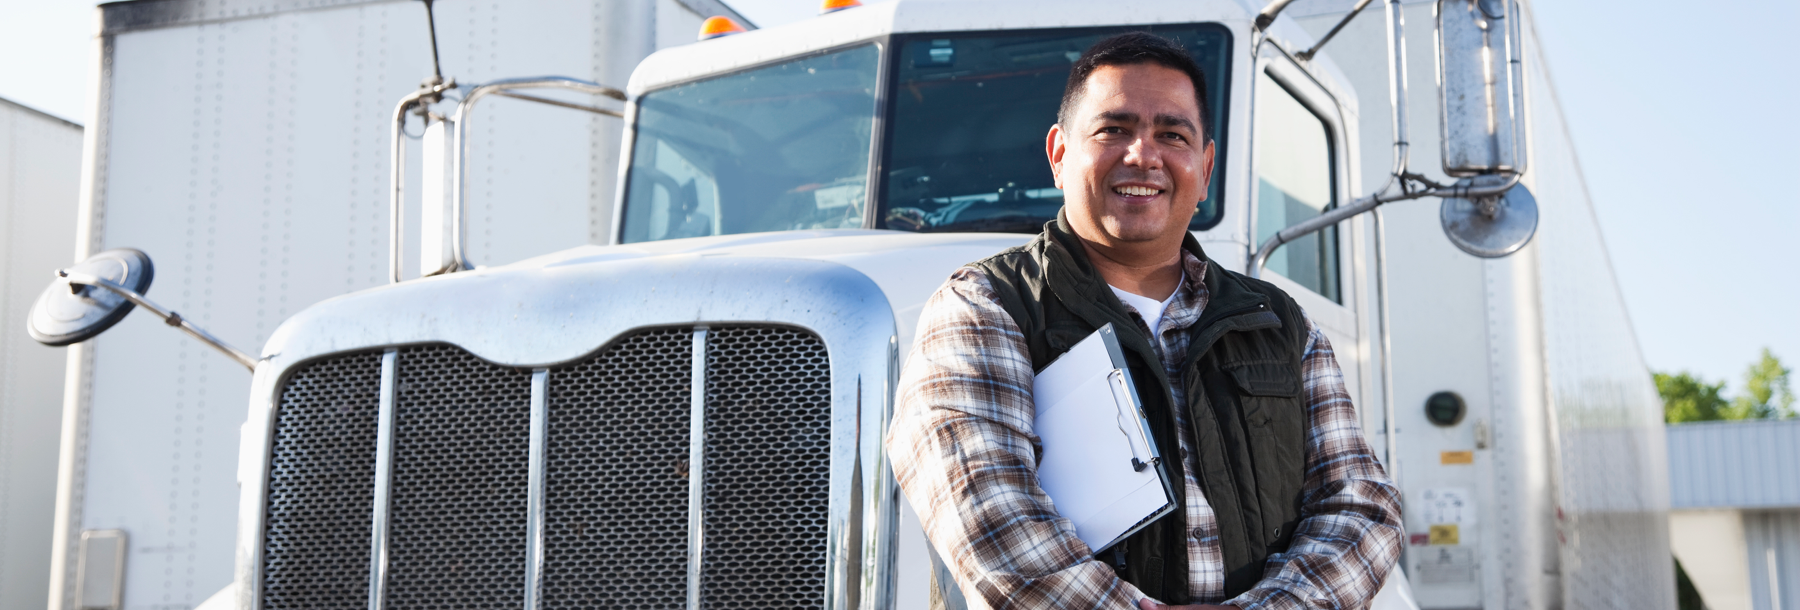 Appreciating Drivers All Year: Best Practices for Driver Retention